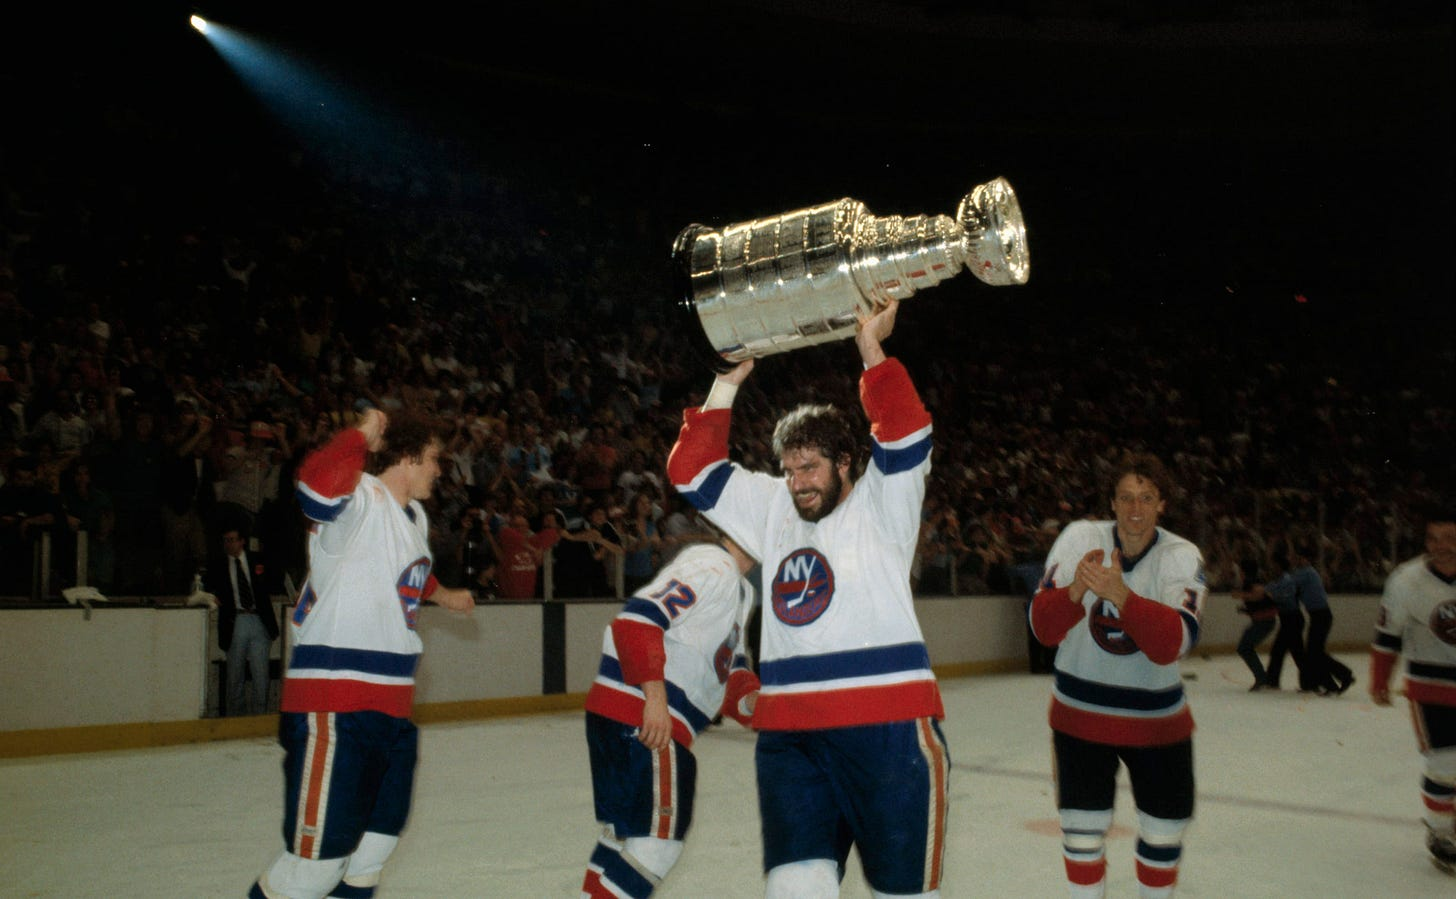 25 most insane things people have ever done with the Stanley Cup - Page 13